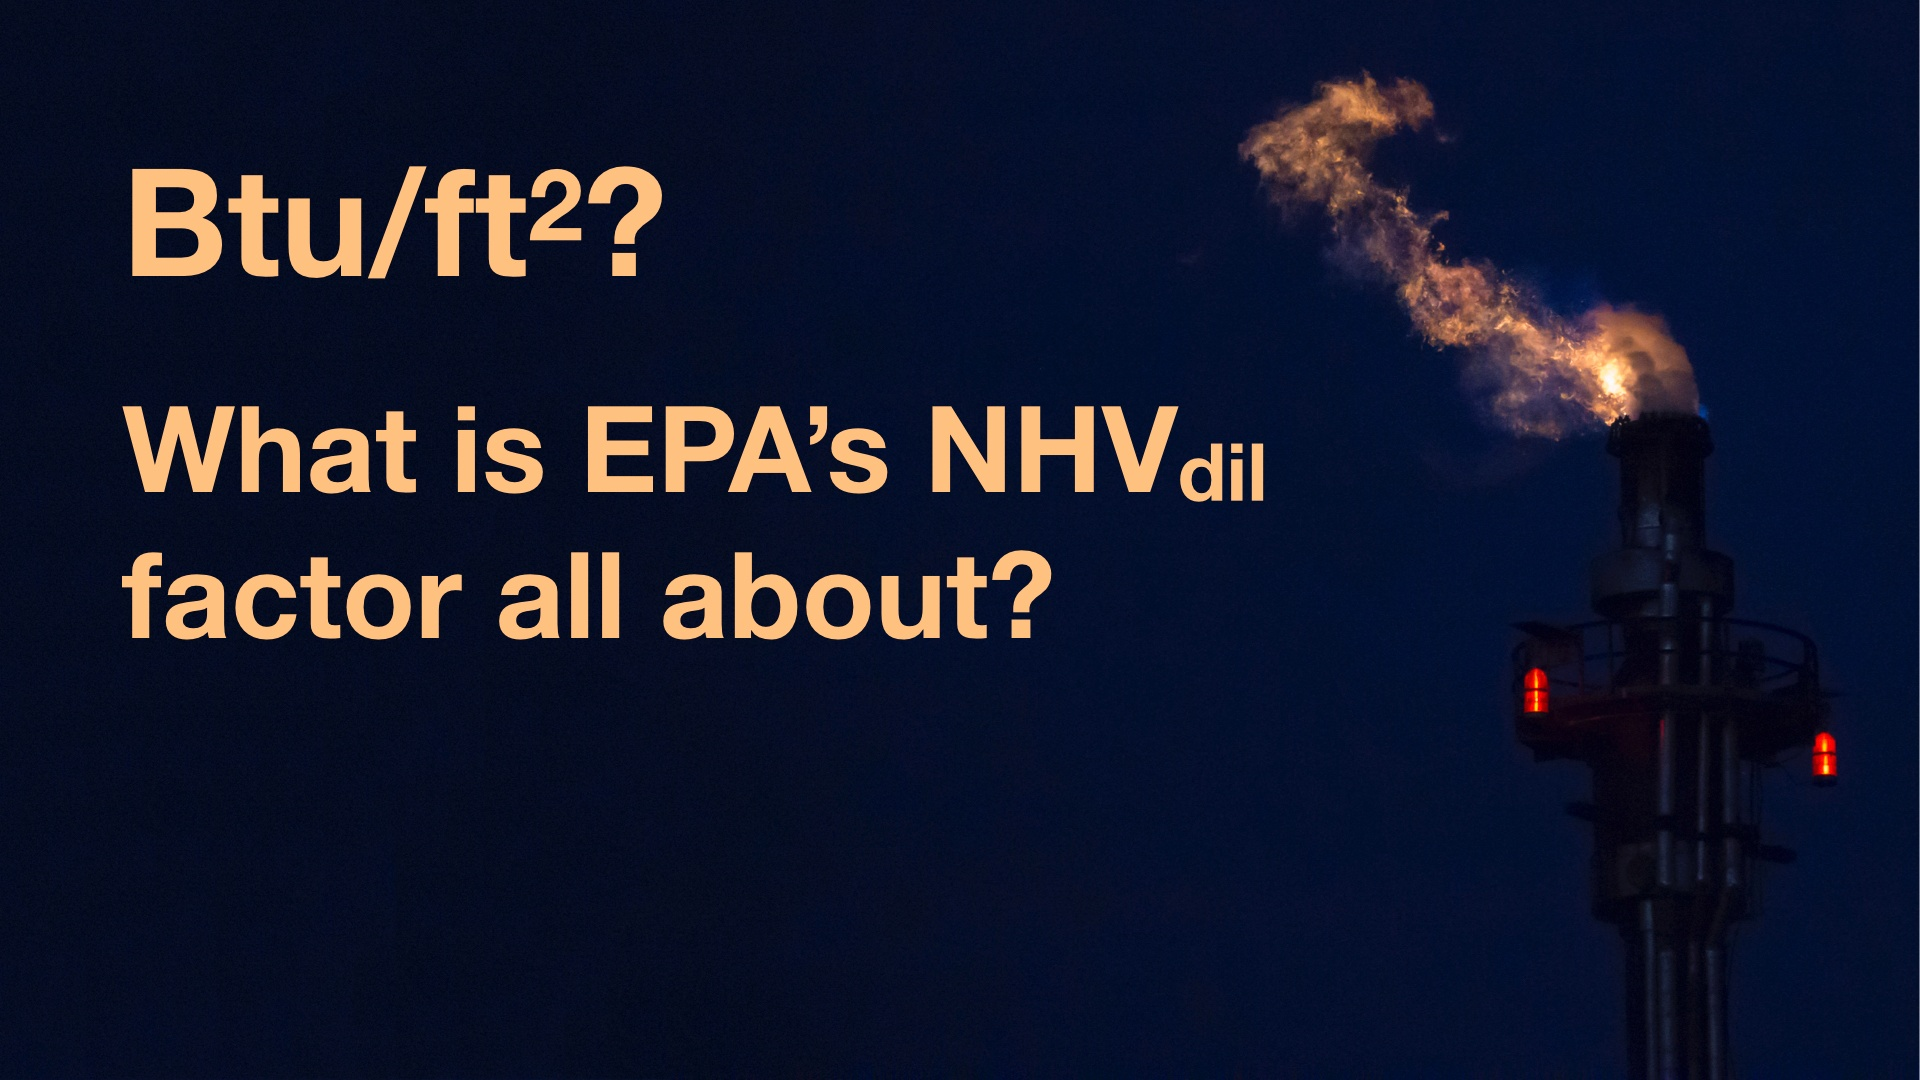 Btu per SQUARE FOOT? What the heck is EPA's Flare Dilution Factor?